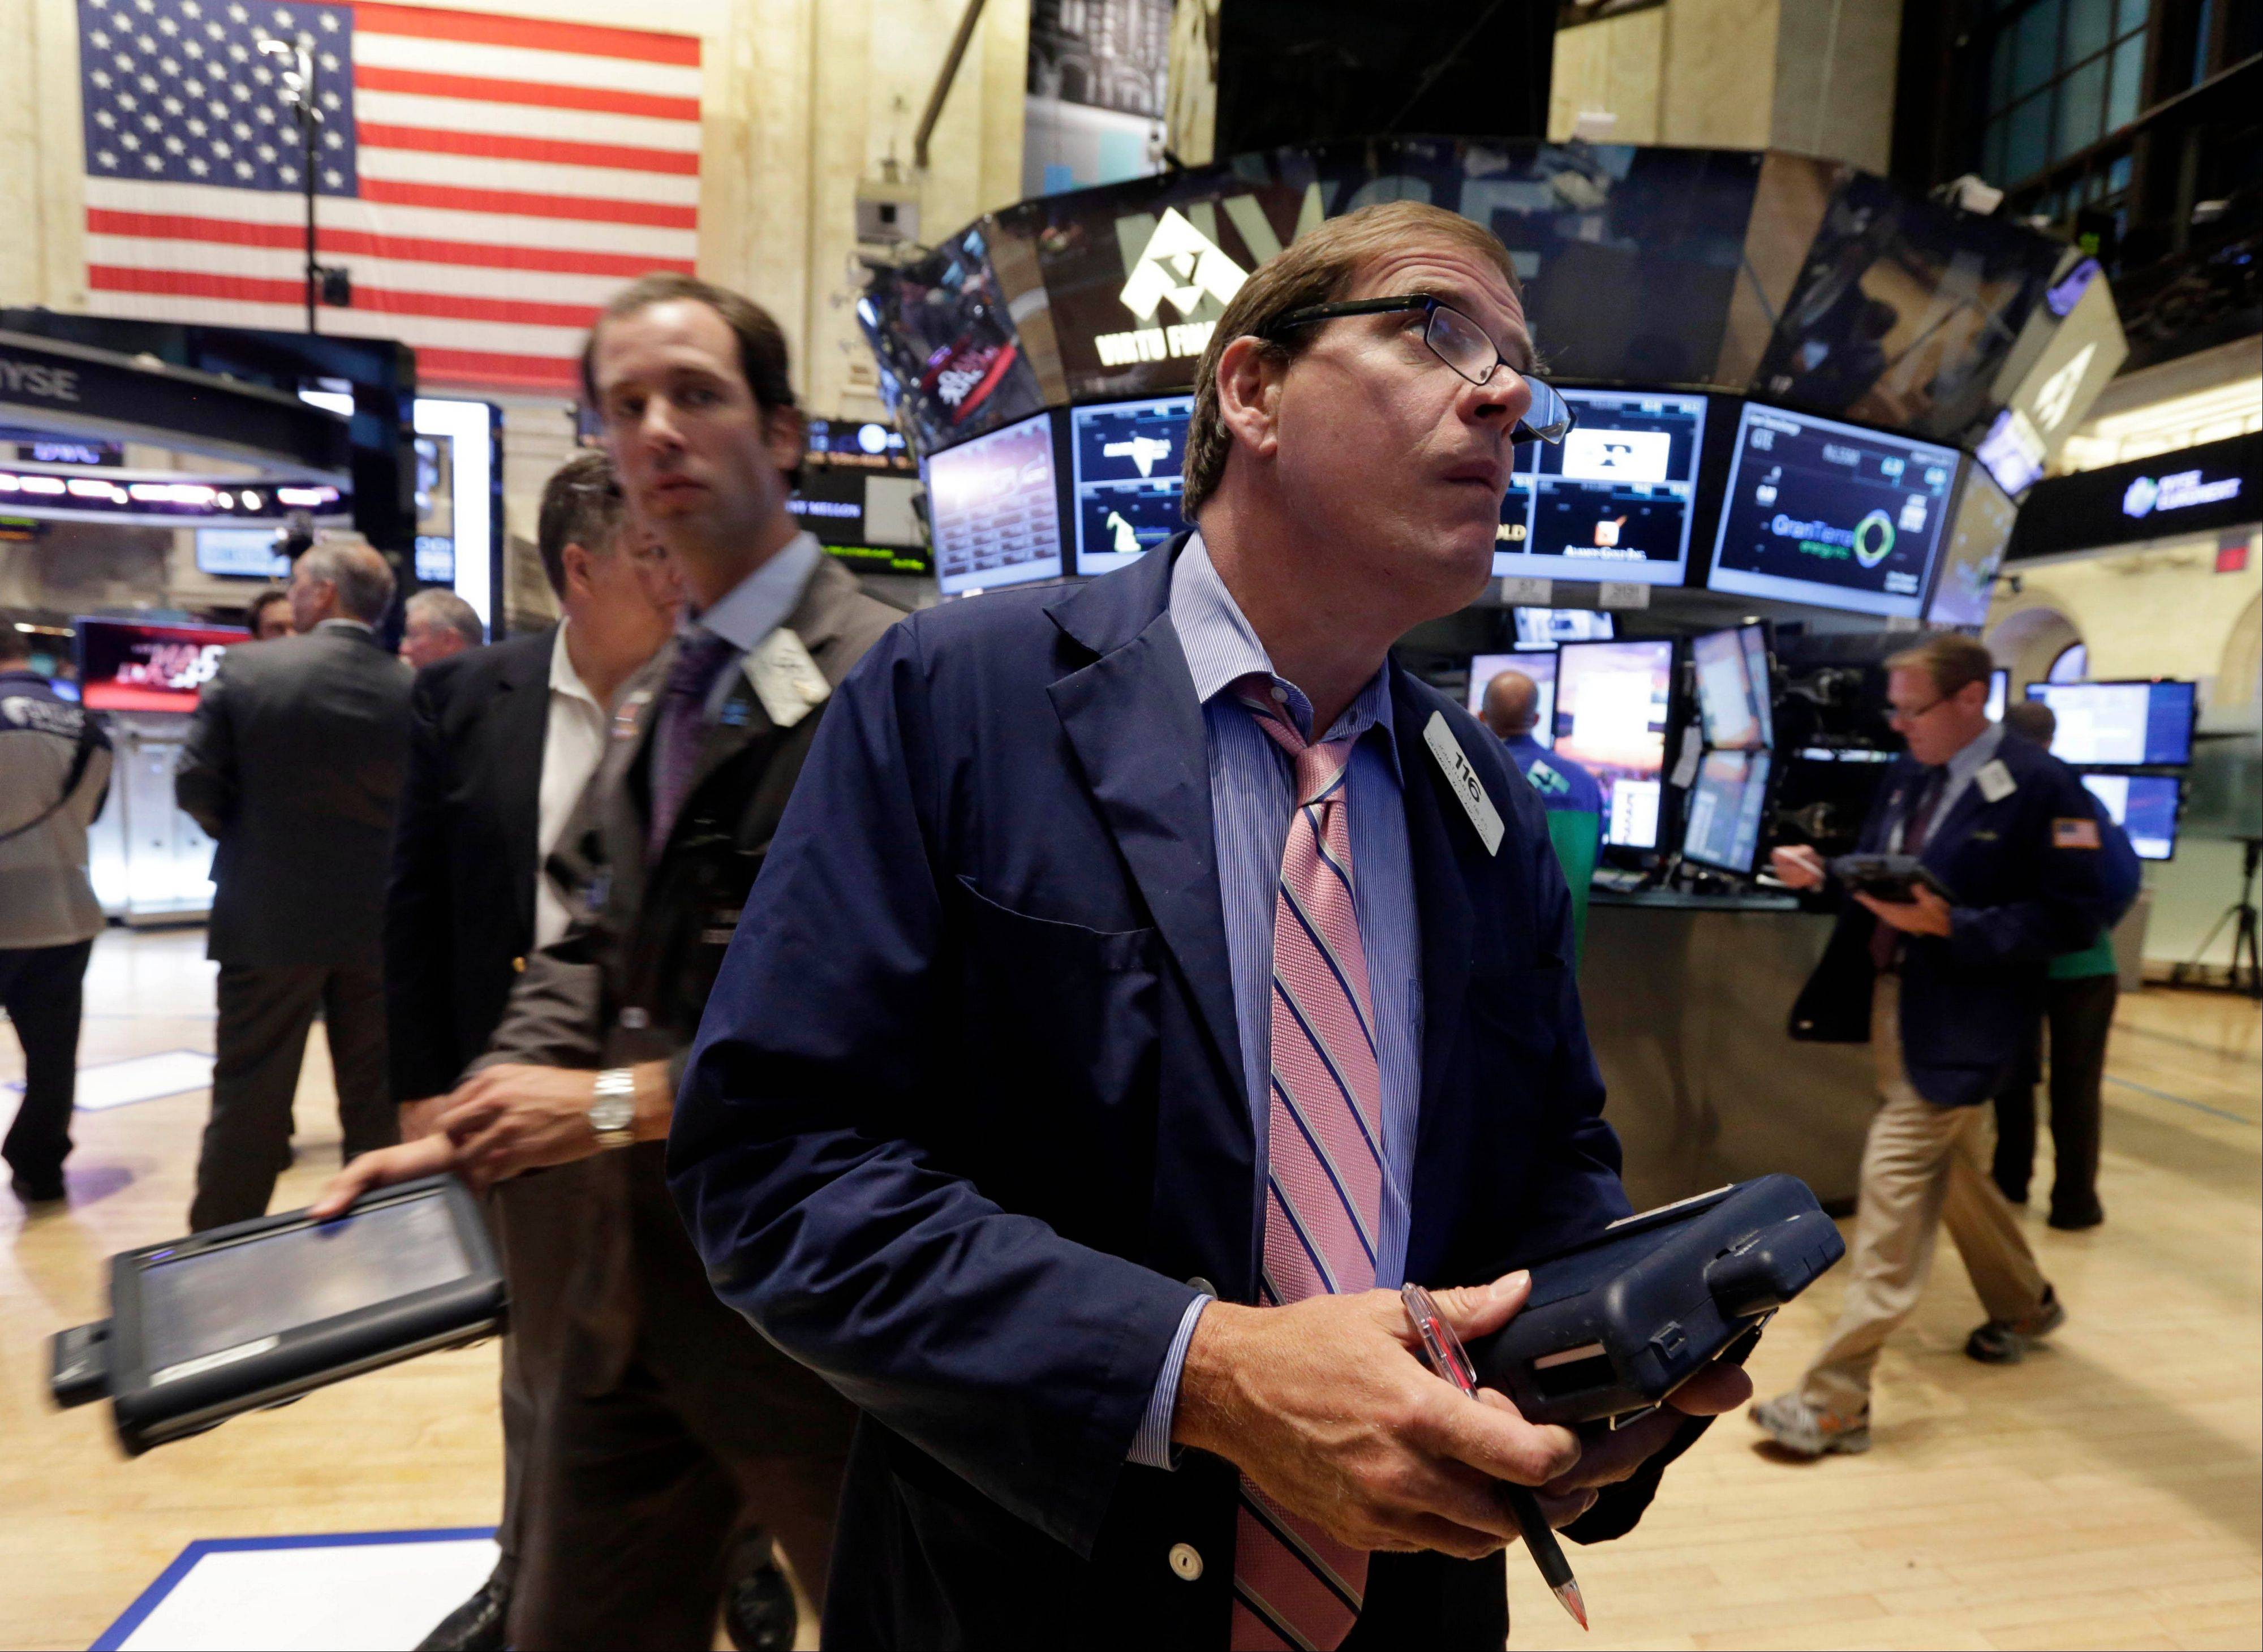 ASSOCIATED PRESS U.S. stocks fell, sending the Standard & Poor�s 500 Index lower for the sixth time in eight days, after economists predicted the Federal Reserve will reduce stimulus in September as European data added to signs that the global economy is strengthening.